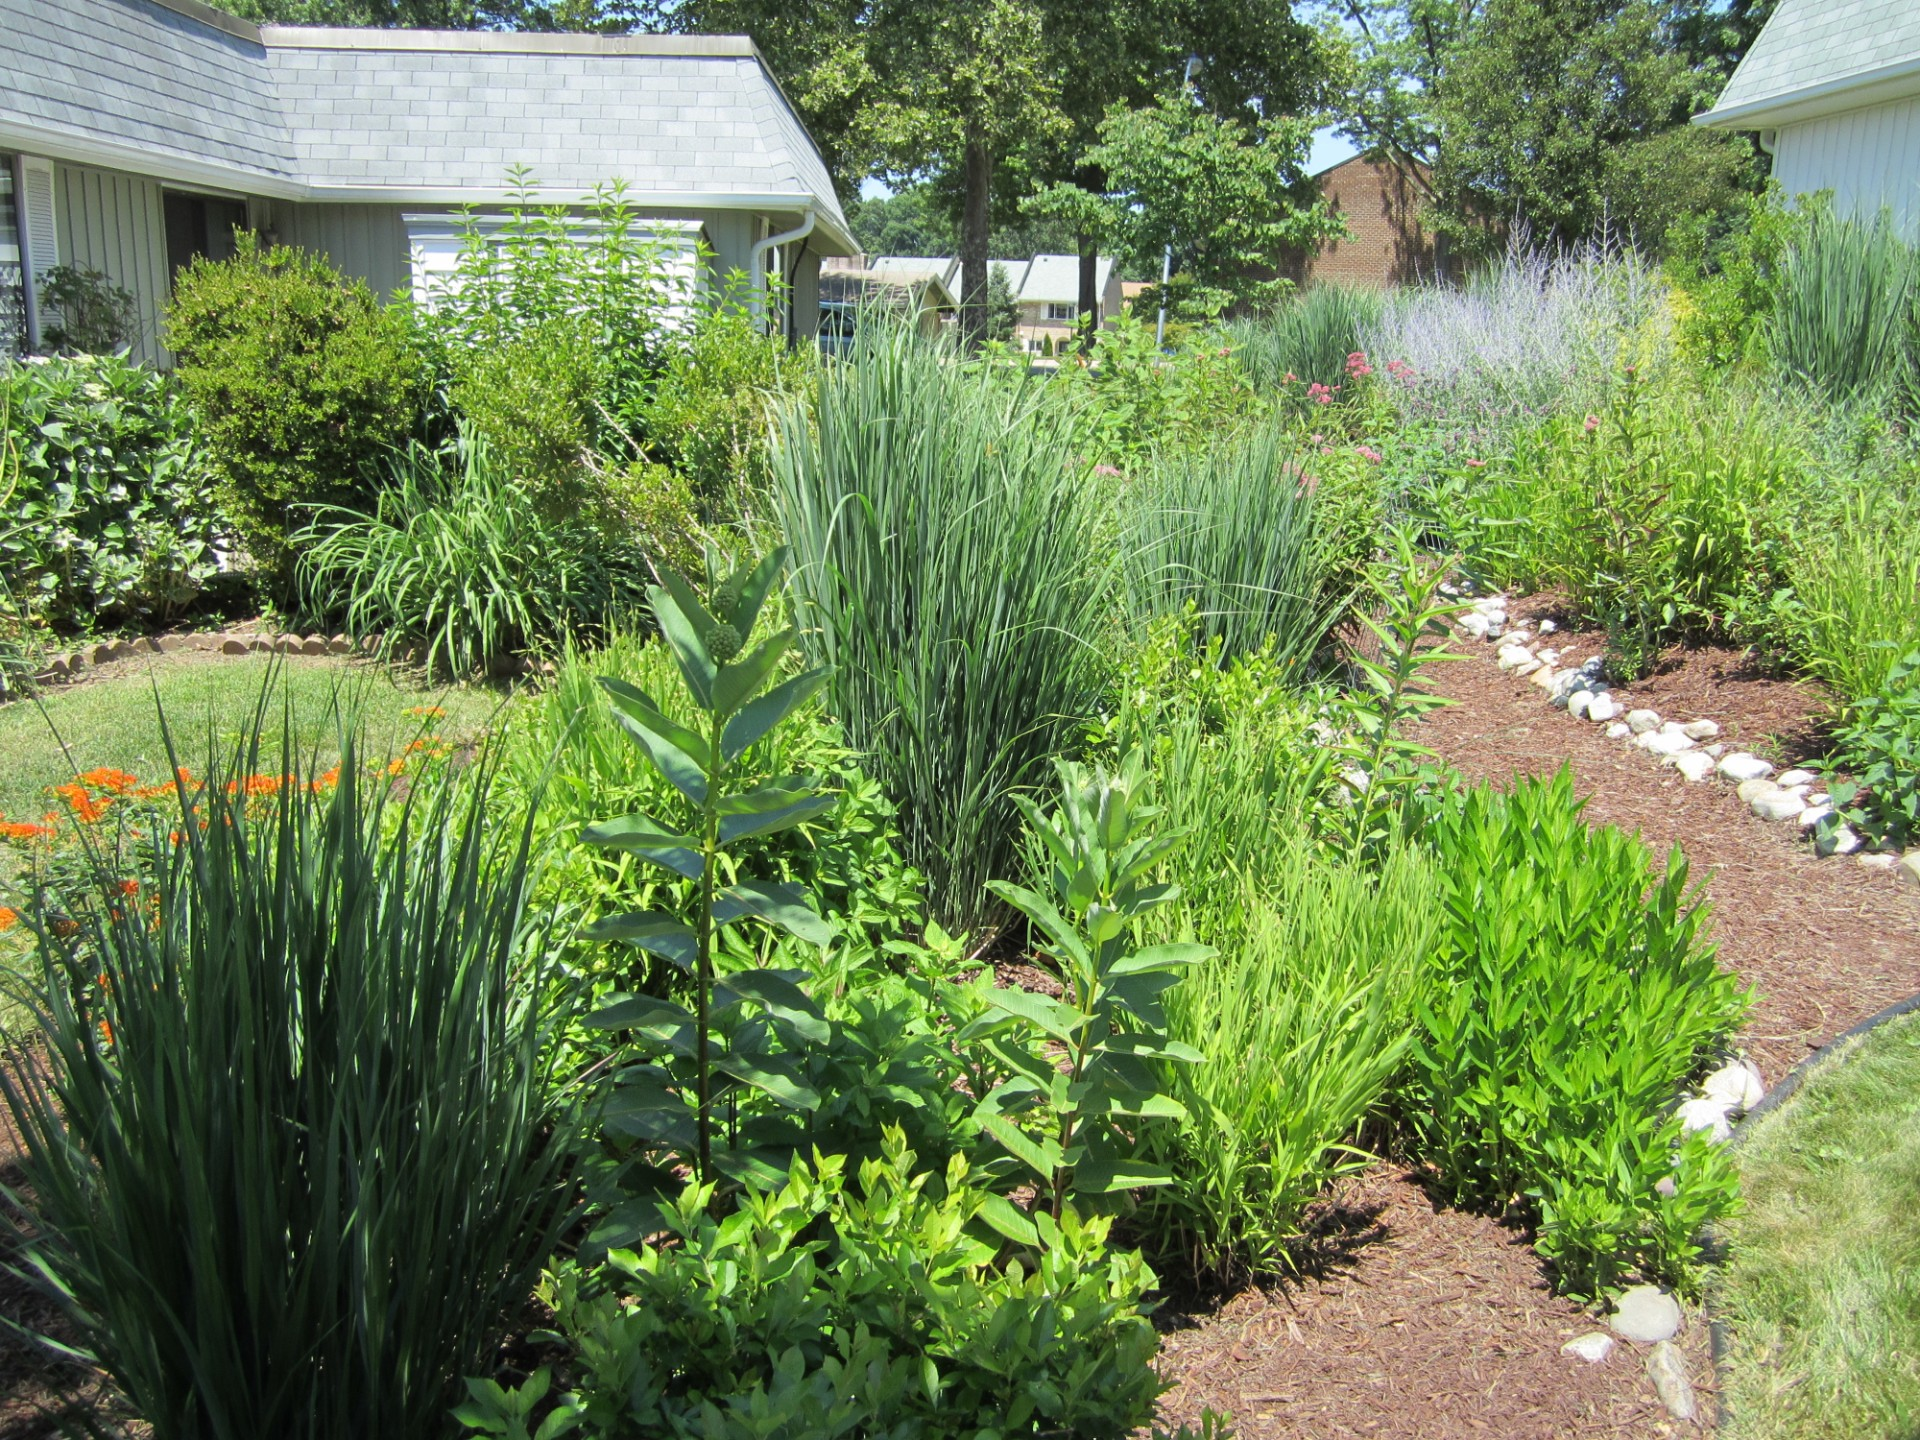 A guide to tucking in your rain garden for winter - My Green Montgomery